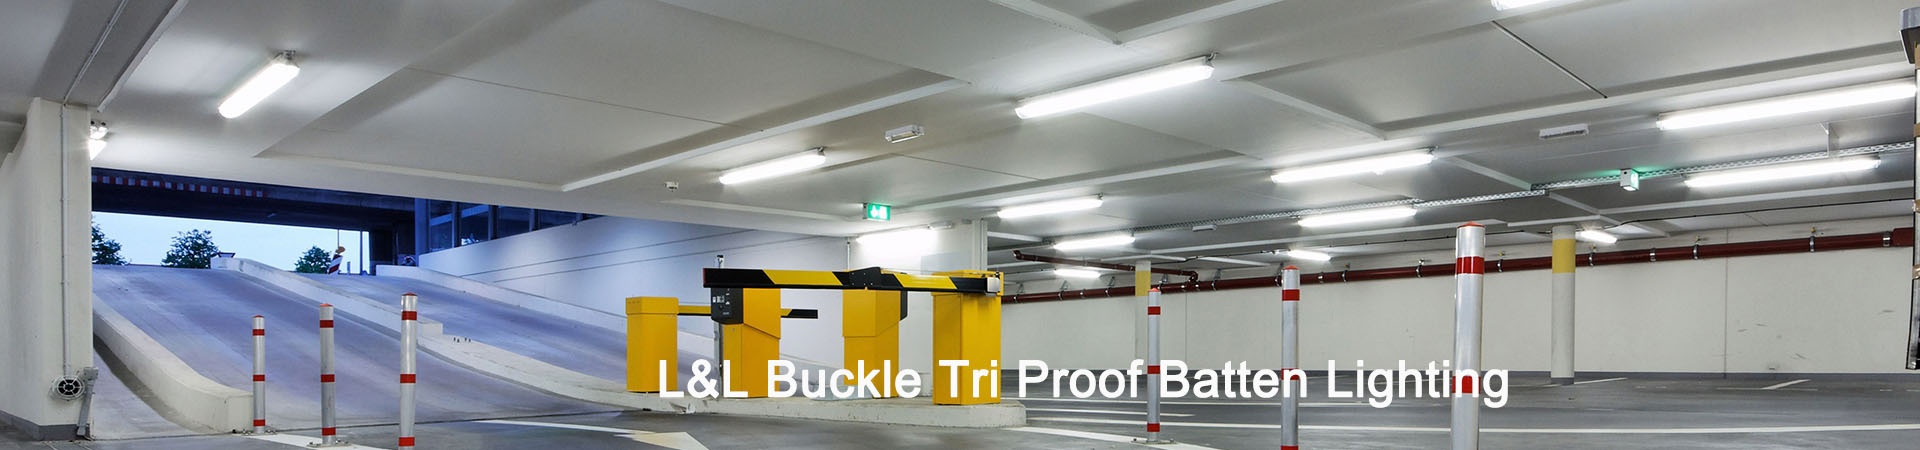 L&L Buckle LED Tri Proof Batten Lighting